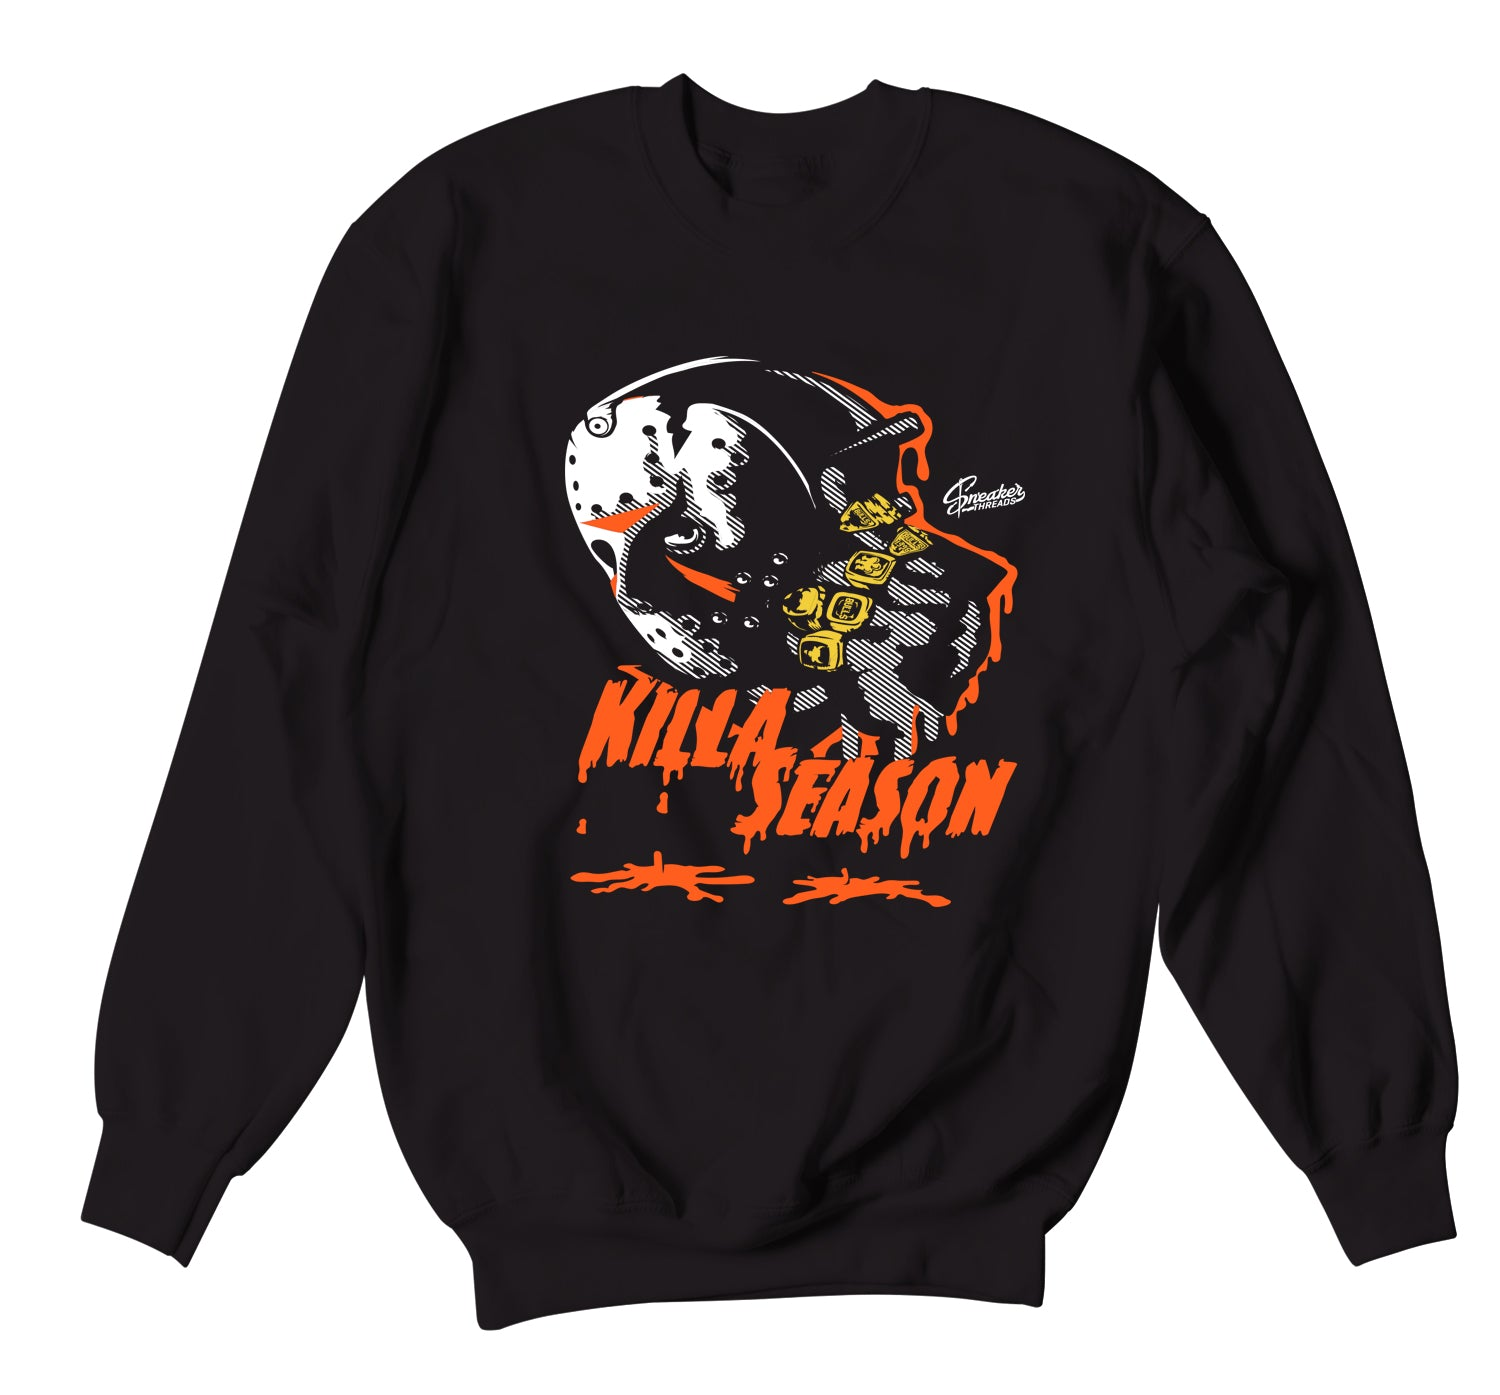 crewneck sweaters designed to match the nike foamposite sneakers